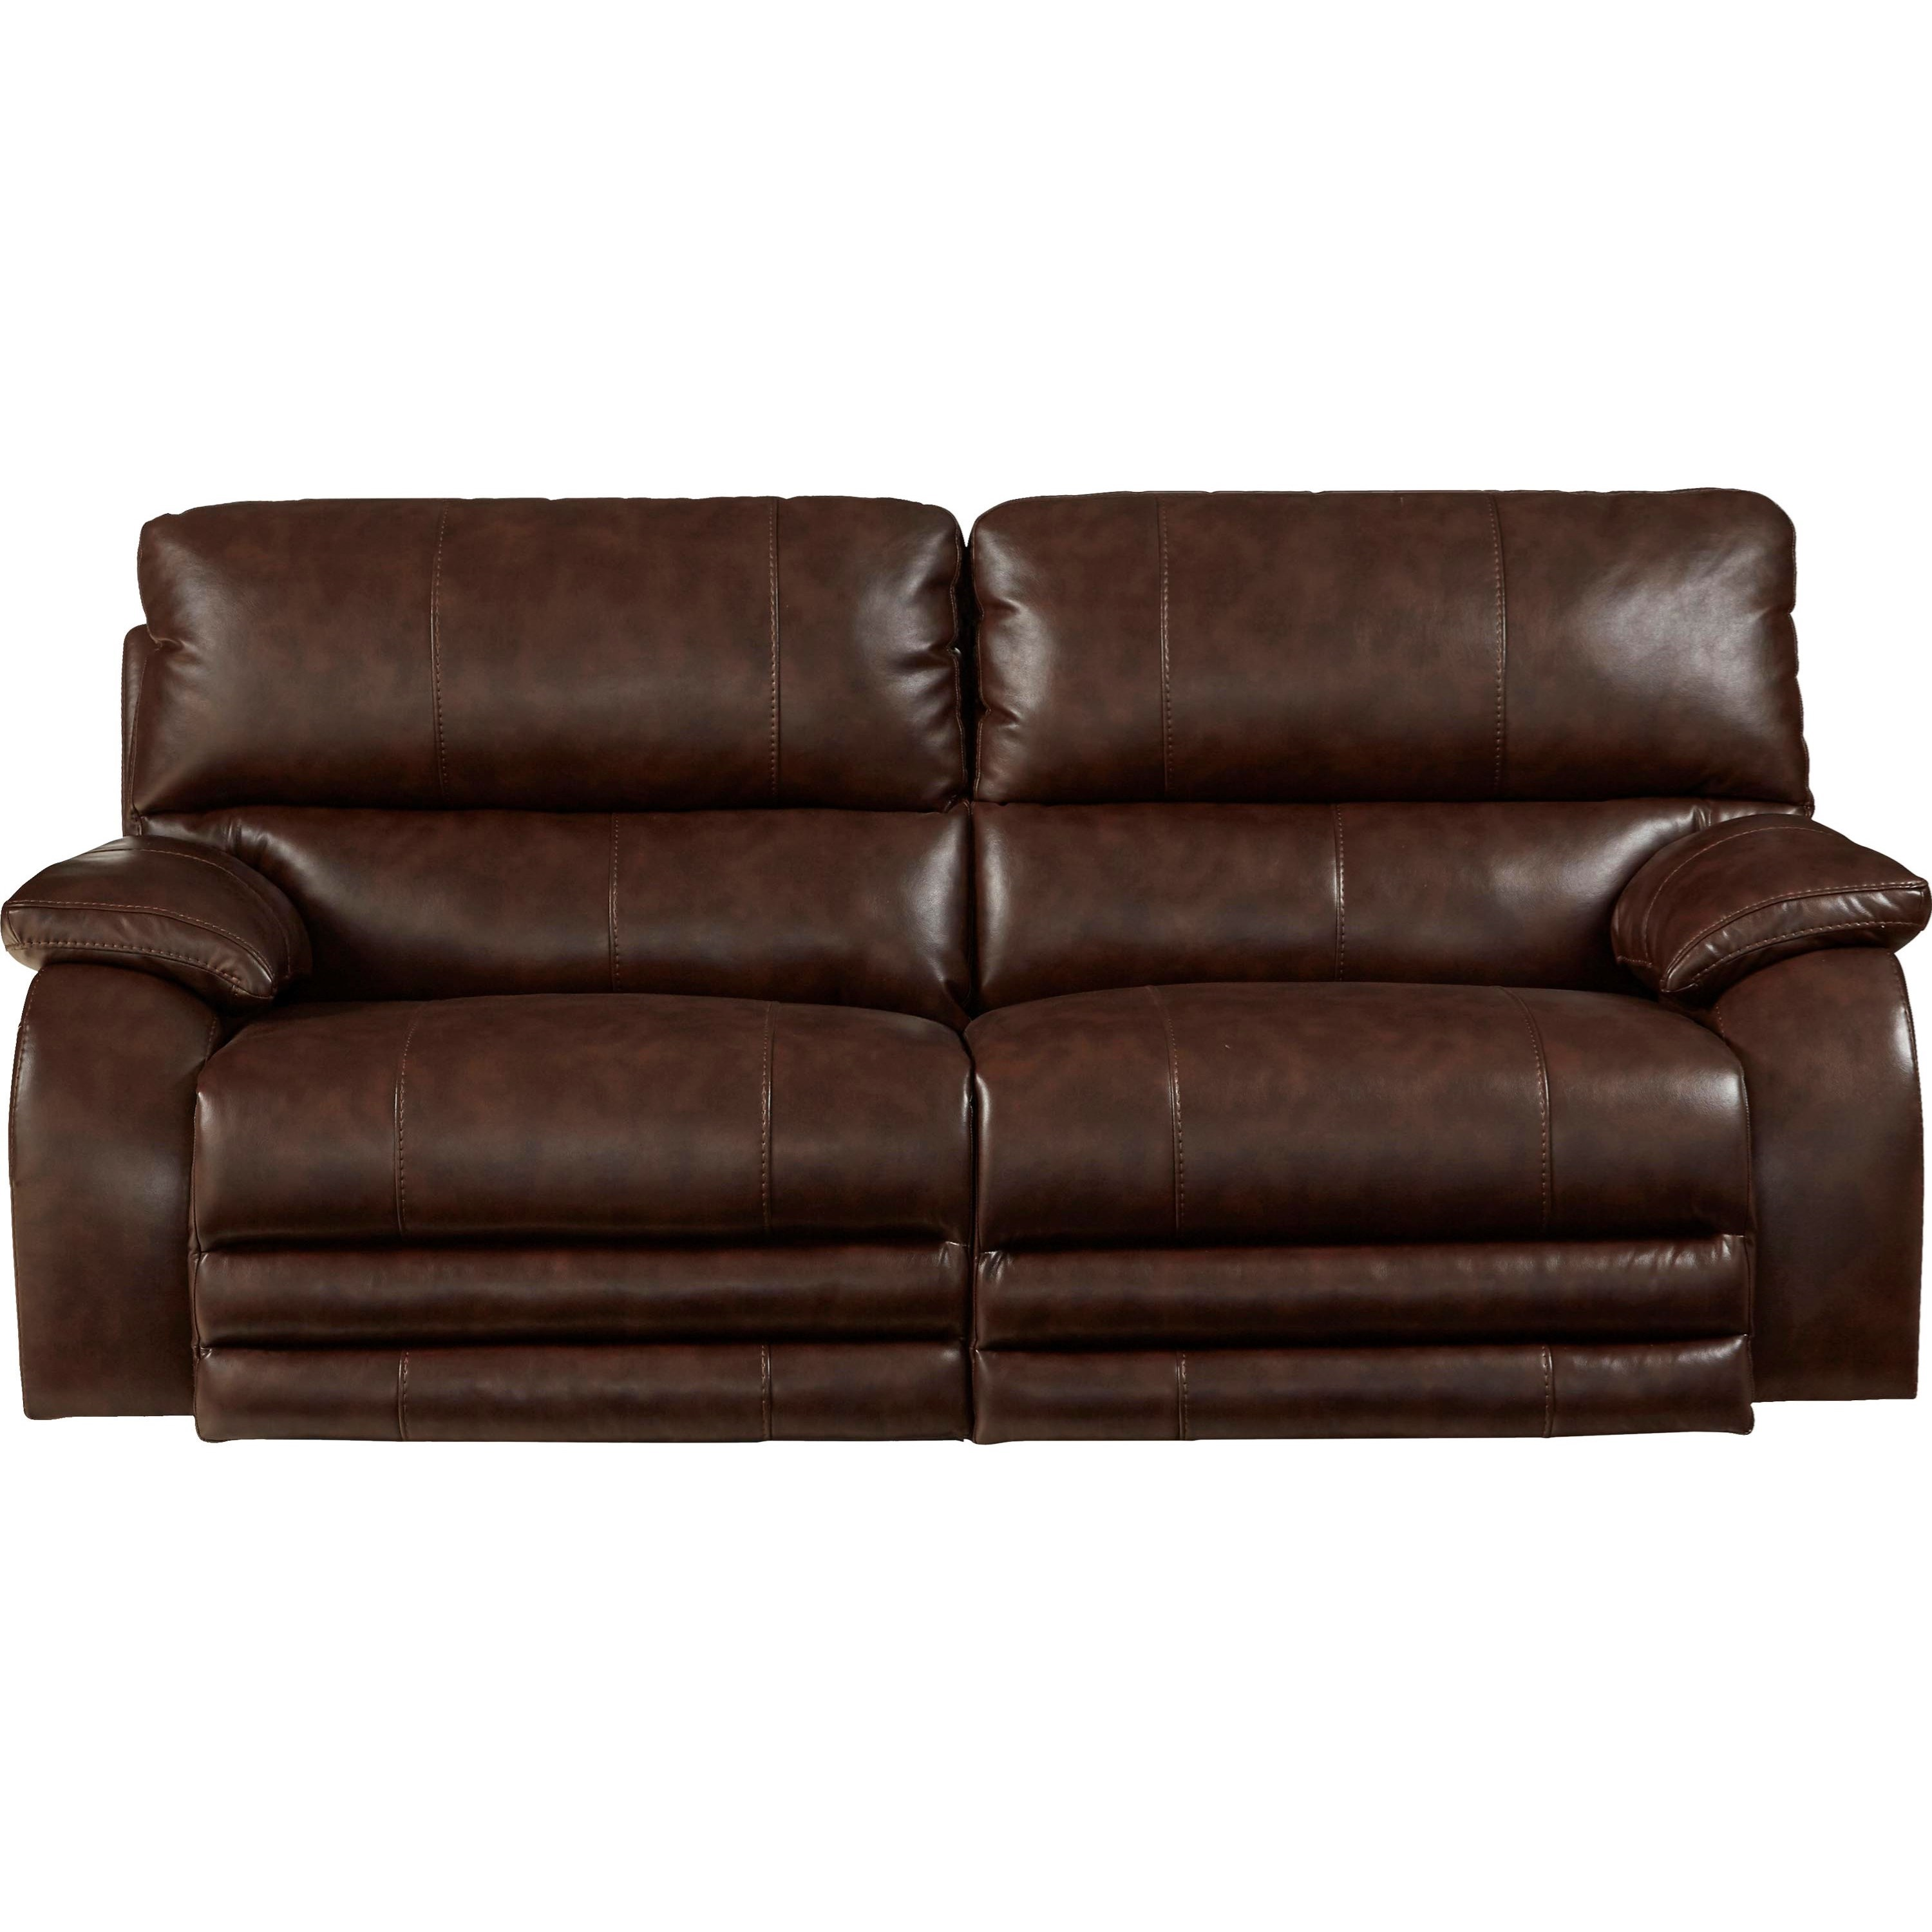 Power Reclining Chairs Reclining Sofa With Power Headrest And Power Lay Flat By